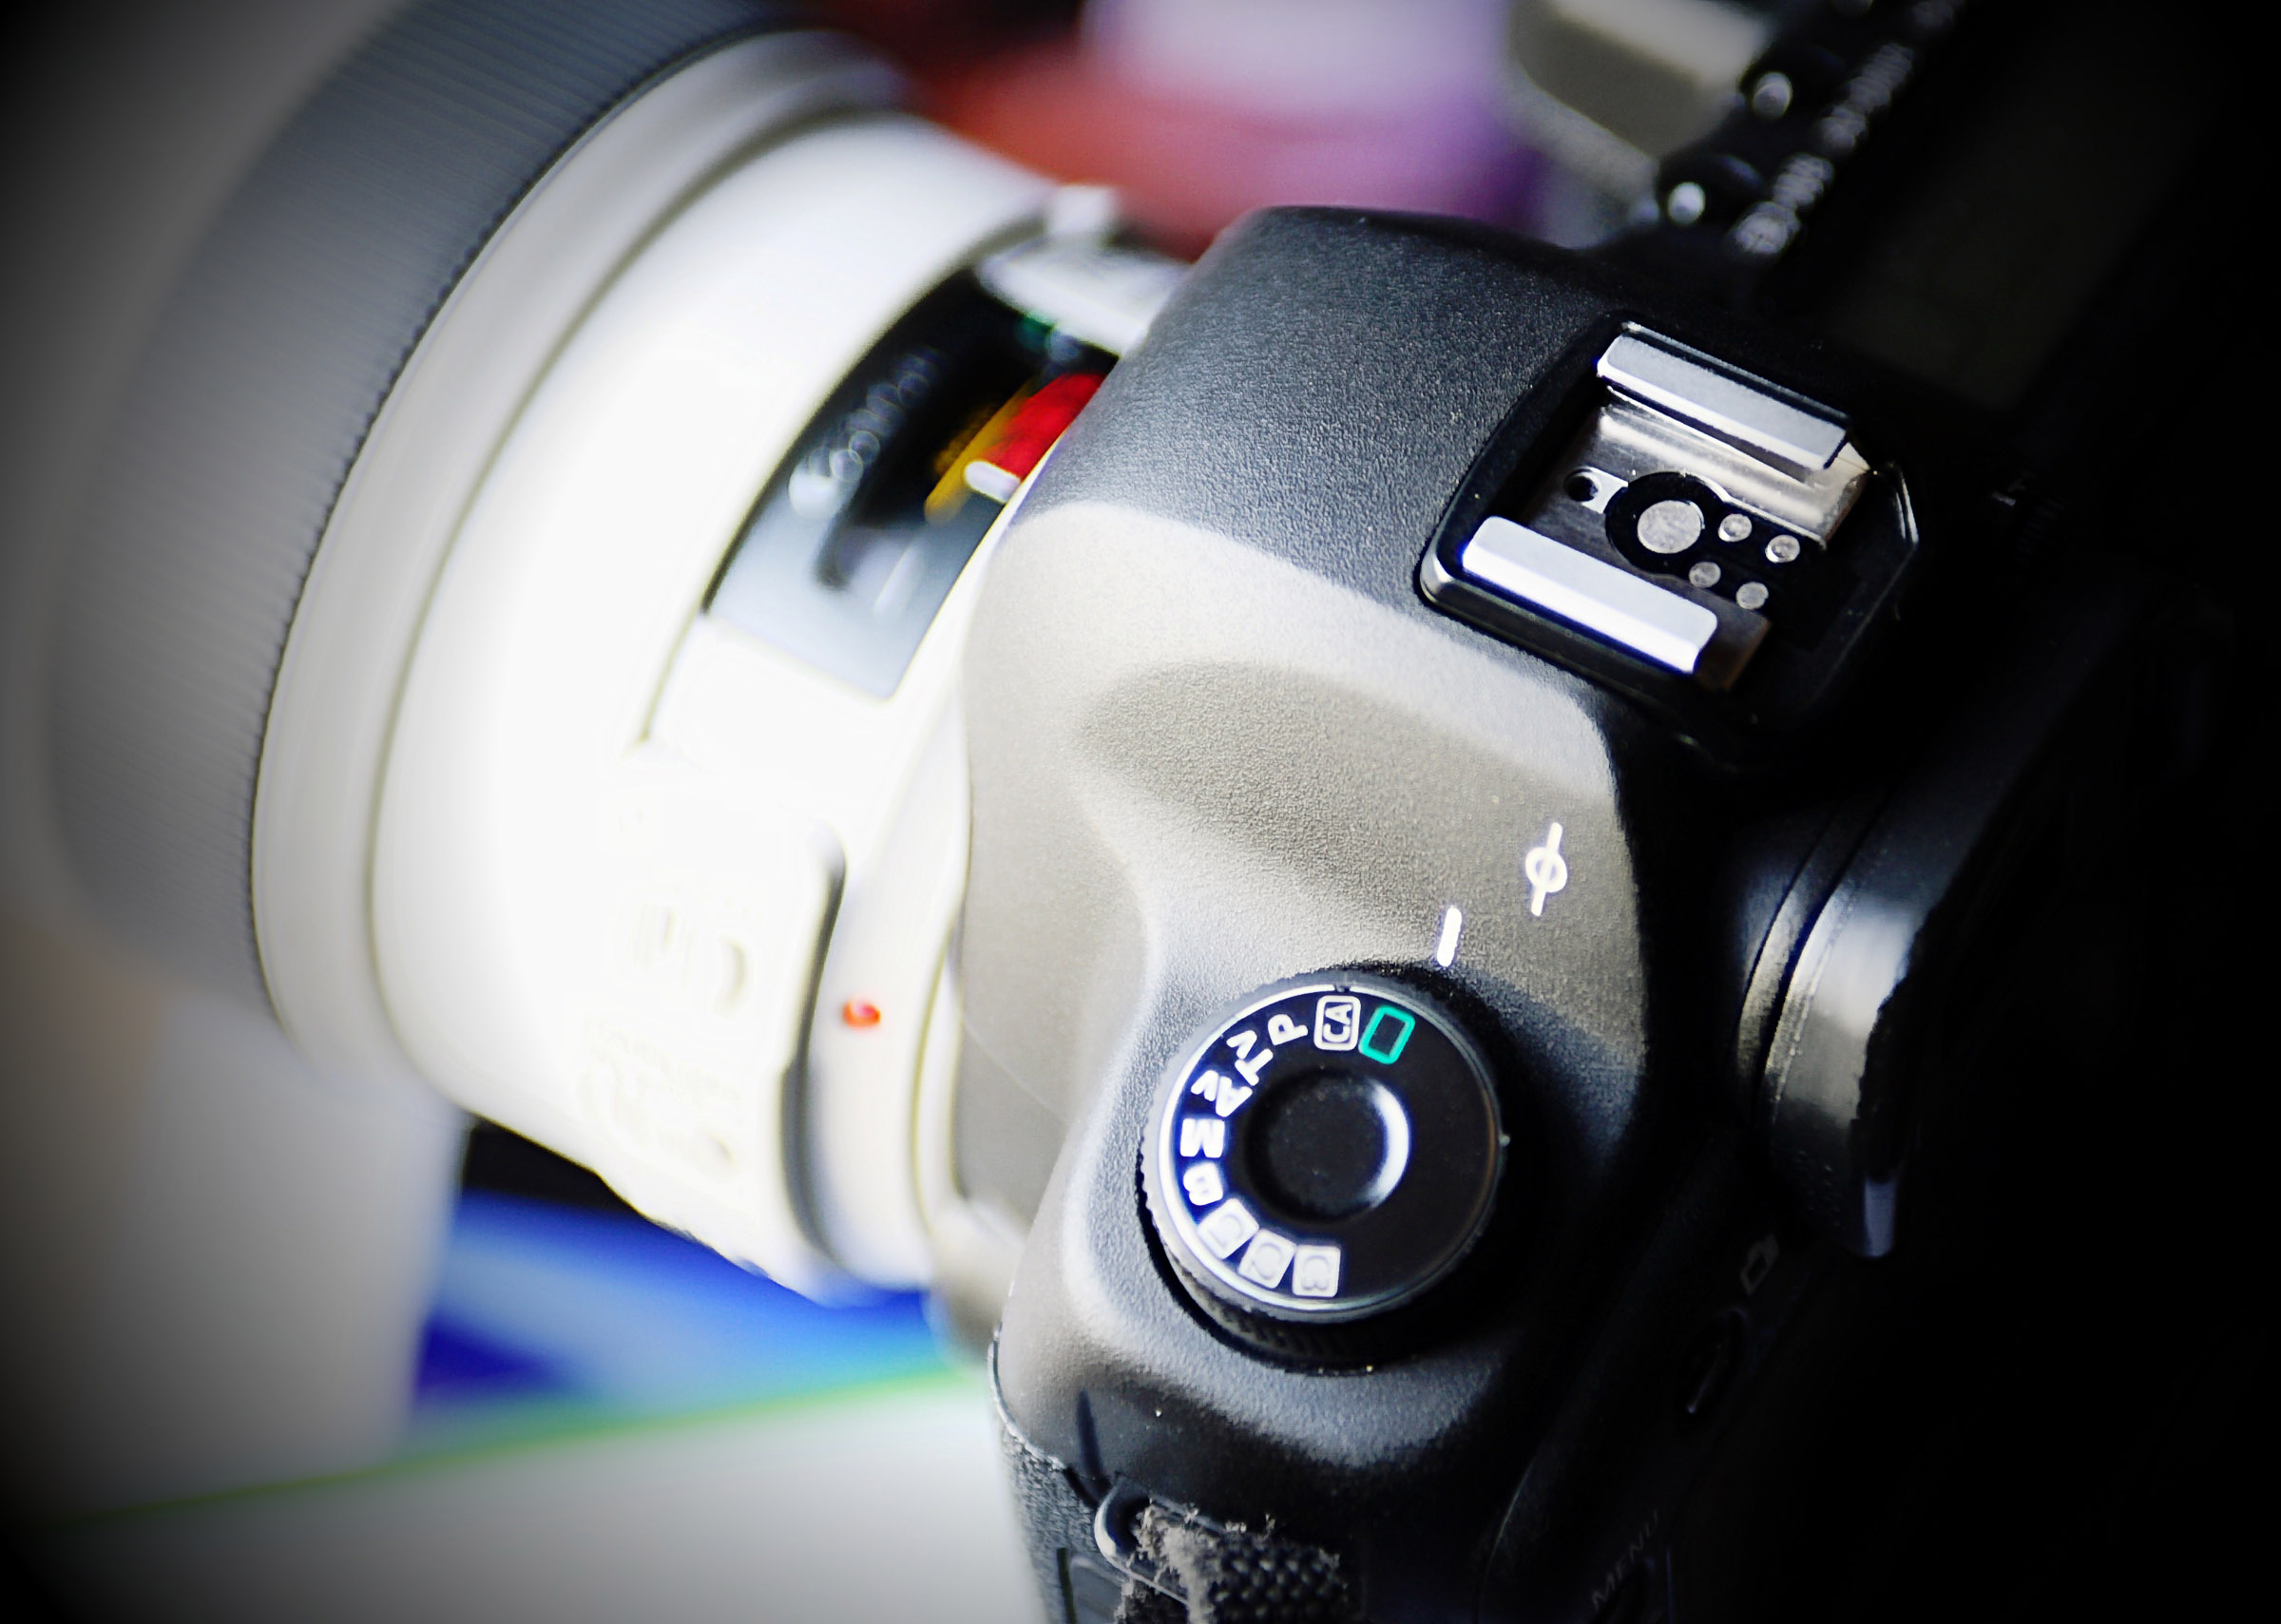 Getting to Grips with Digital Photography - Ideal for beginners or those new to digital photography. Covers the optimum settings for the best photography, understanding your camera modes, when and how to creative control and much more...